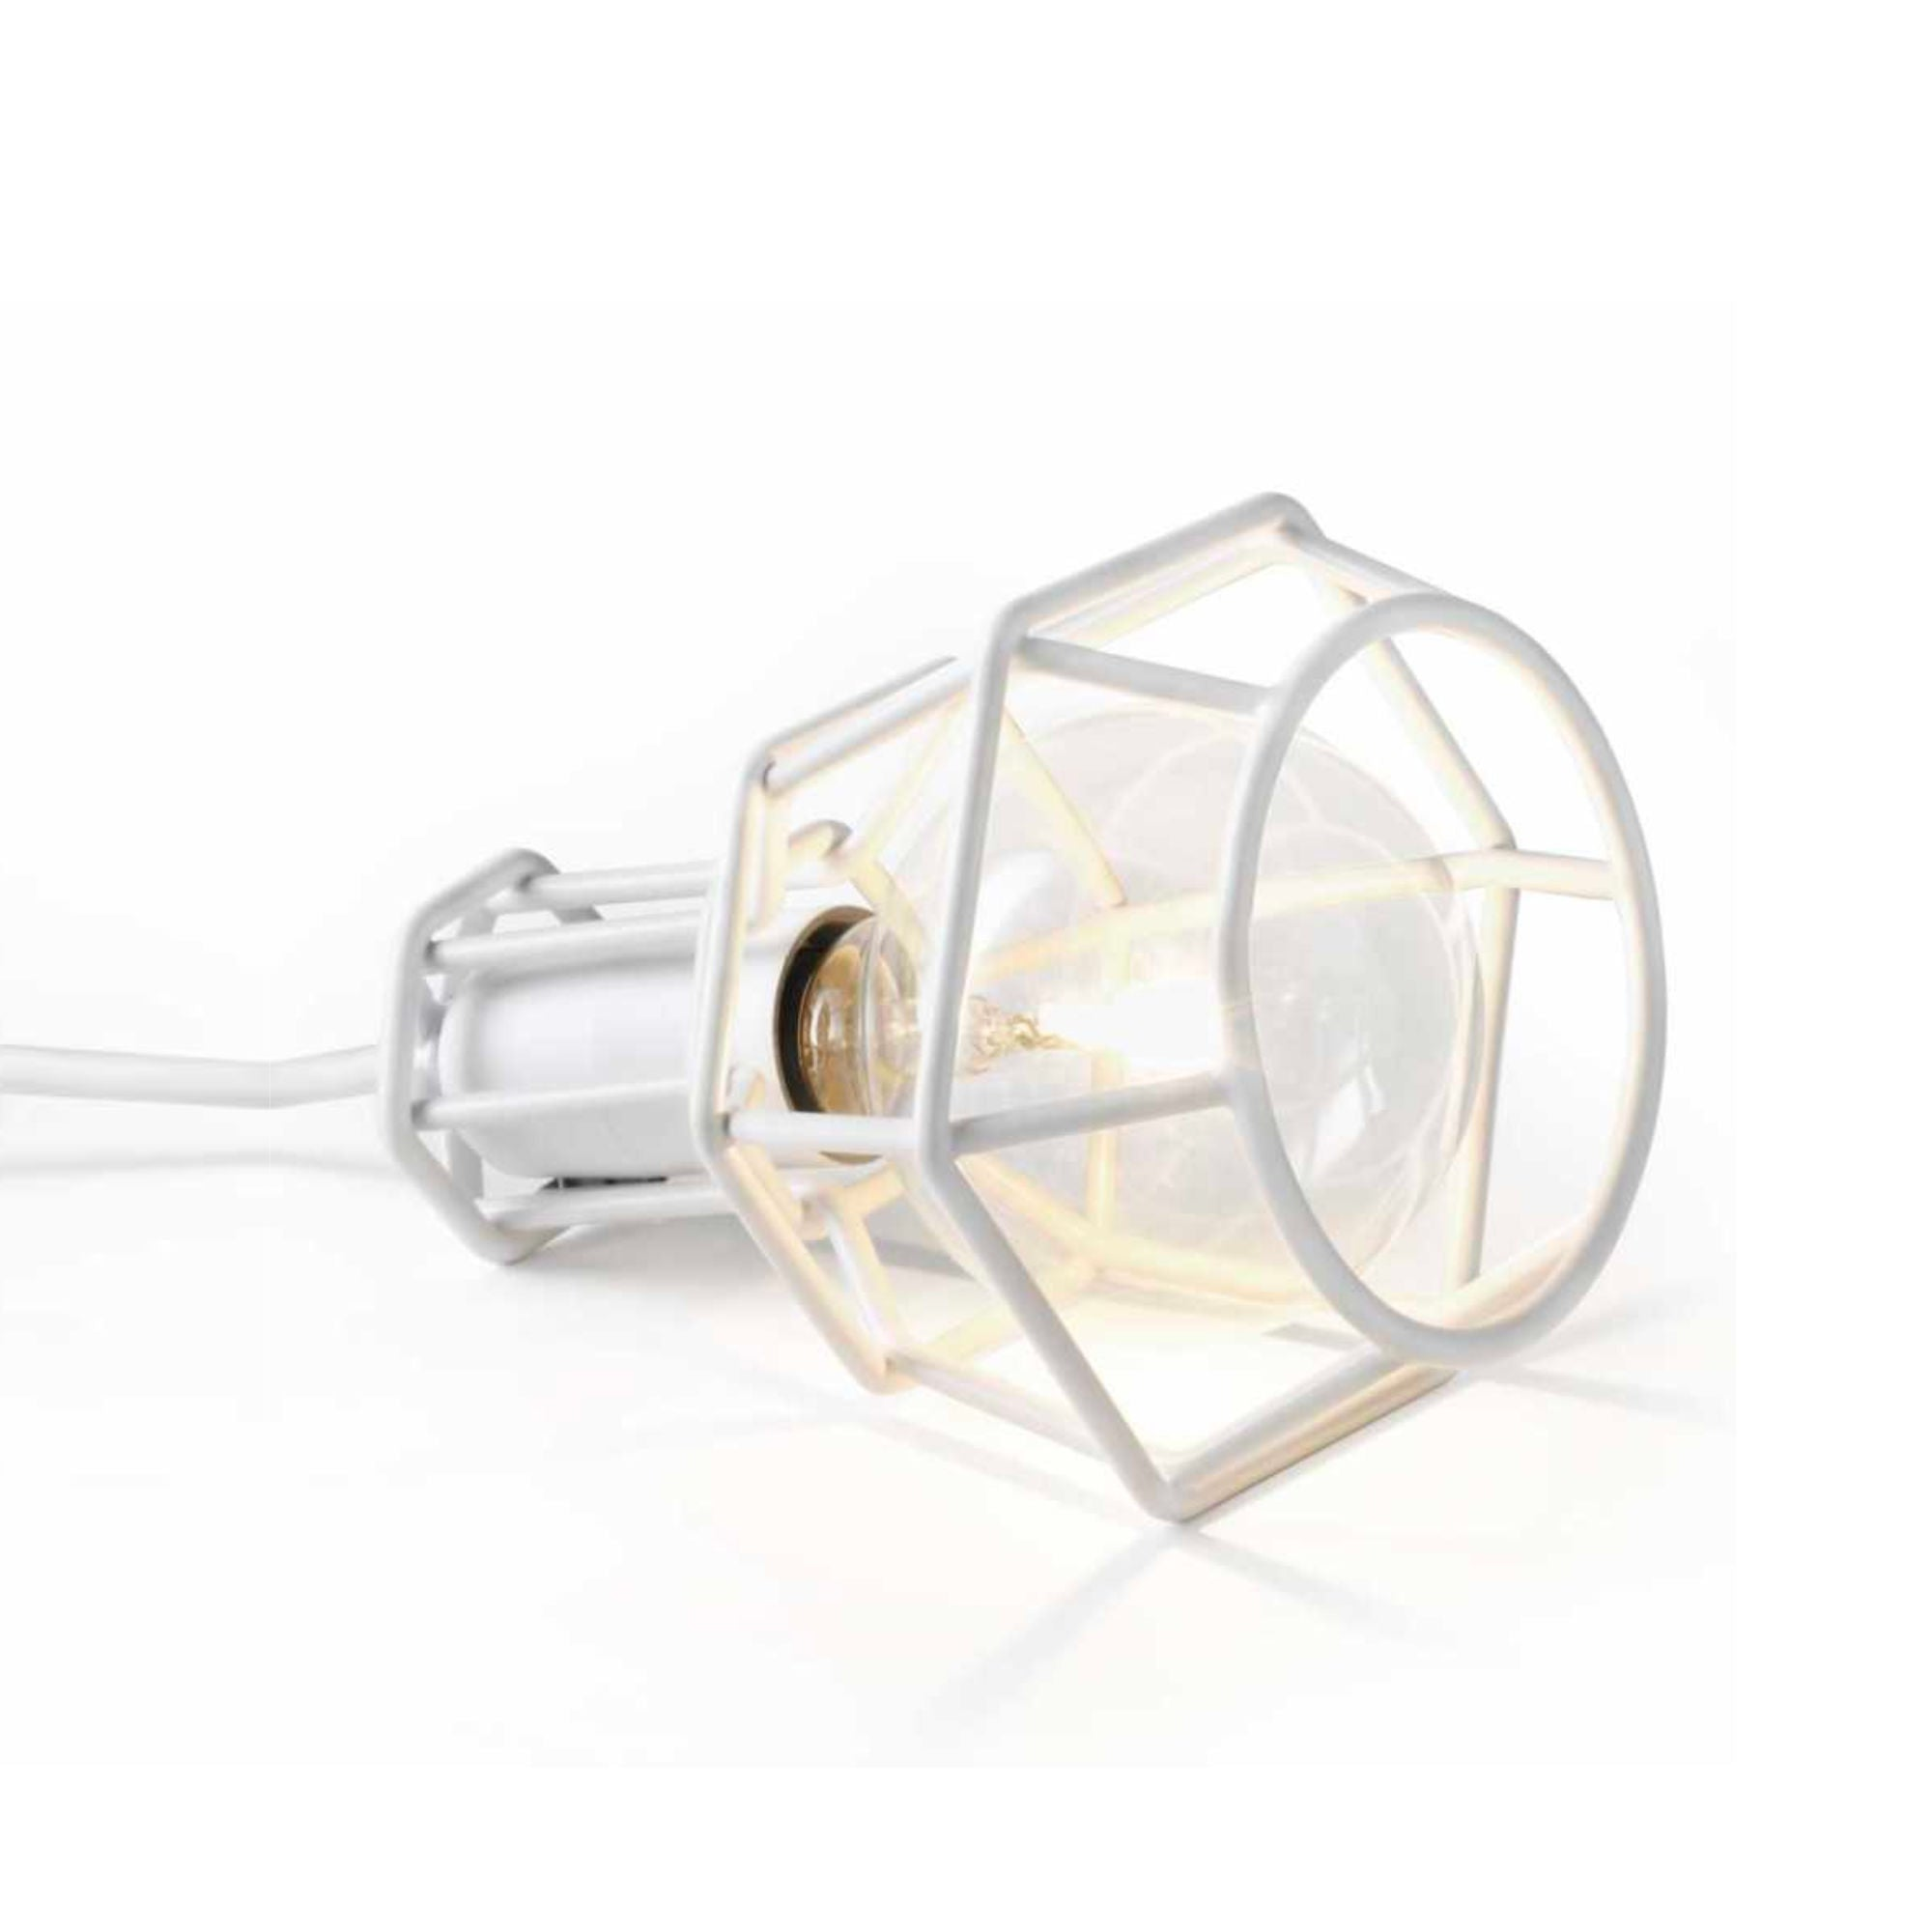 Design House Stockholm Work Lamp , White